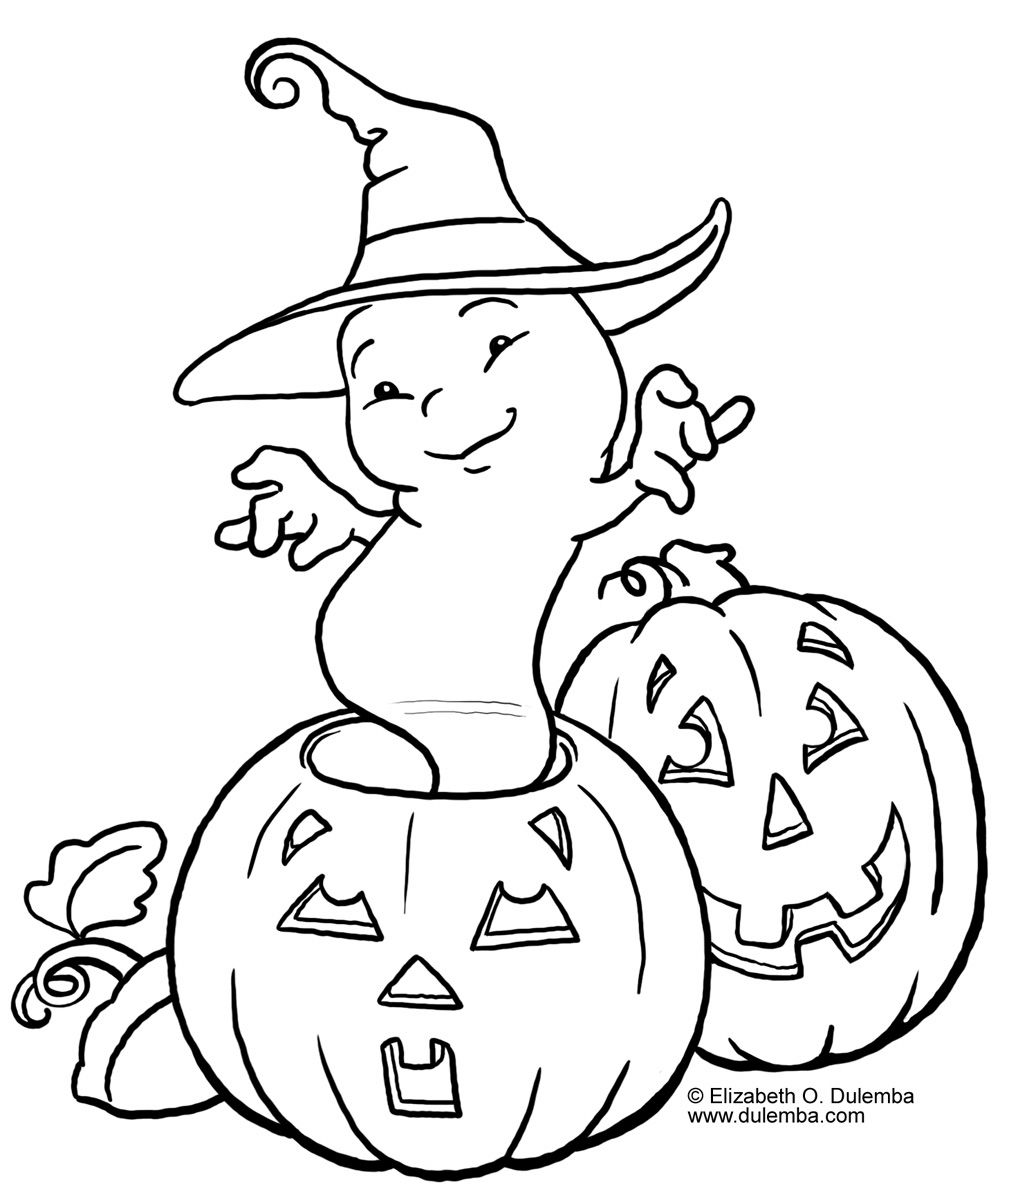 Pumpkin coloring pages for kids - Top 10 Free Printable Halloween Pumpkin Coloring Pages Online